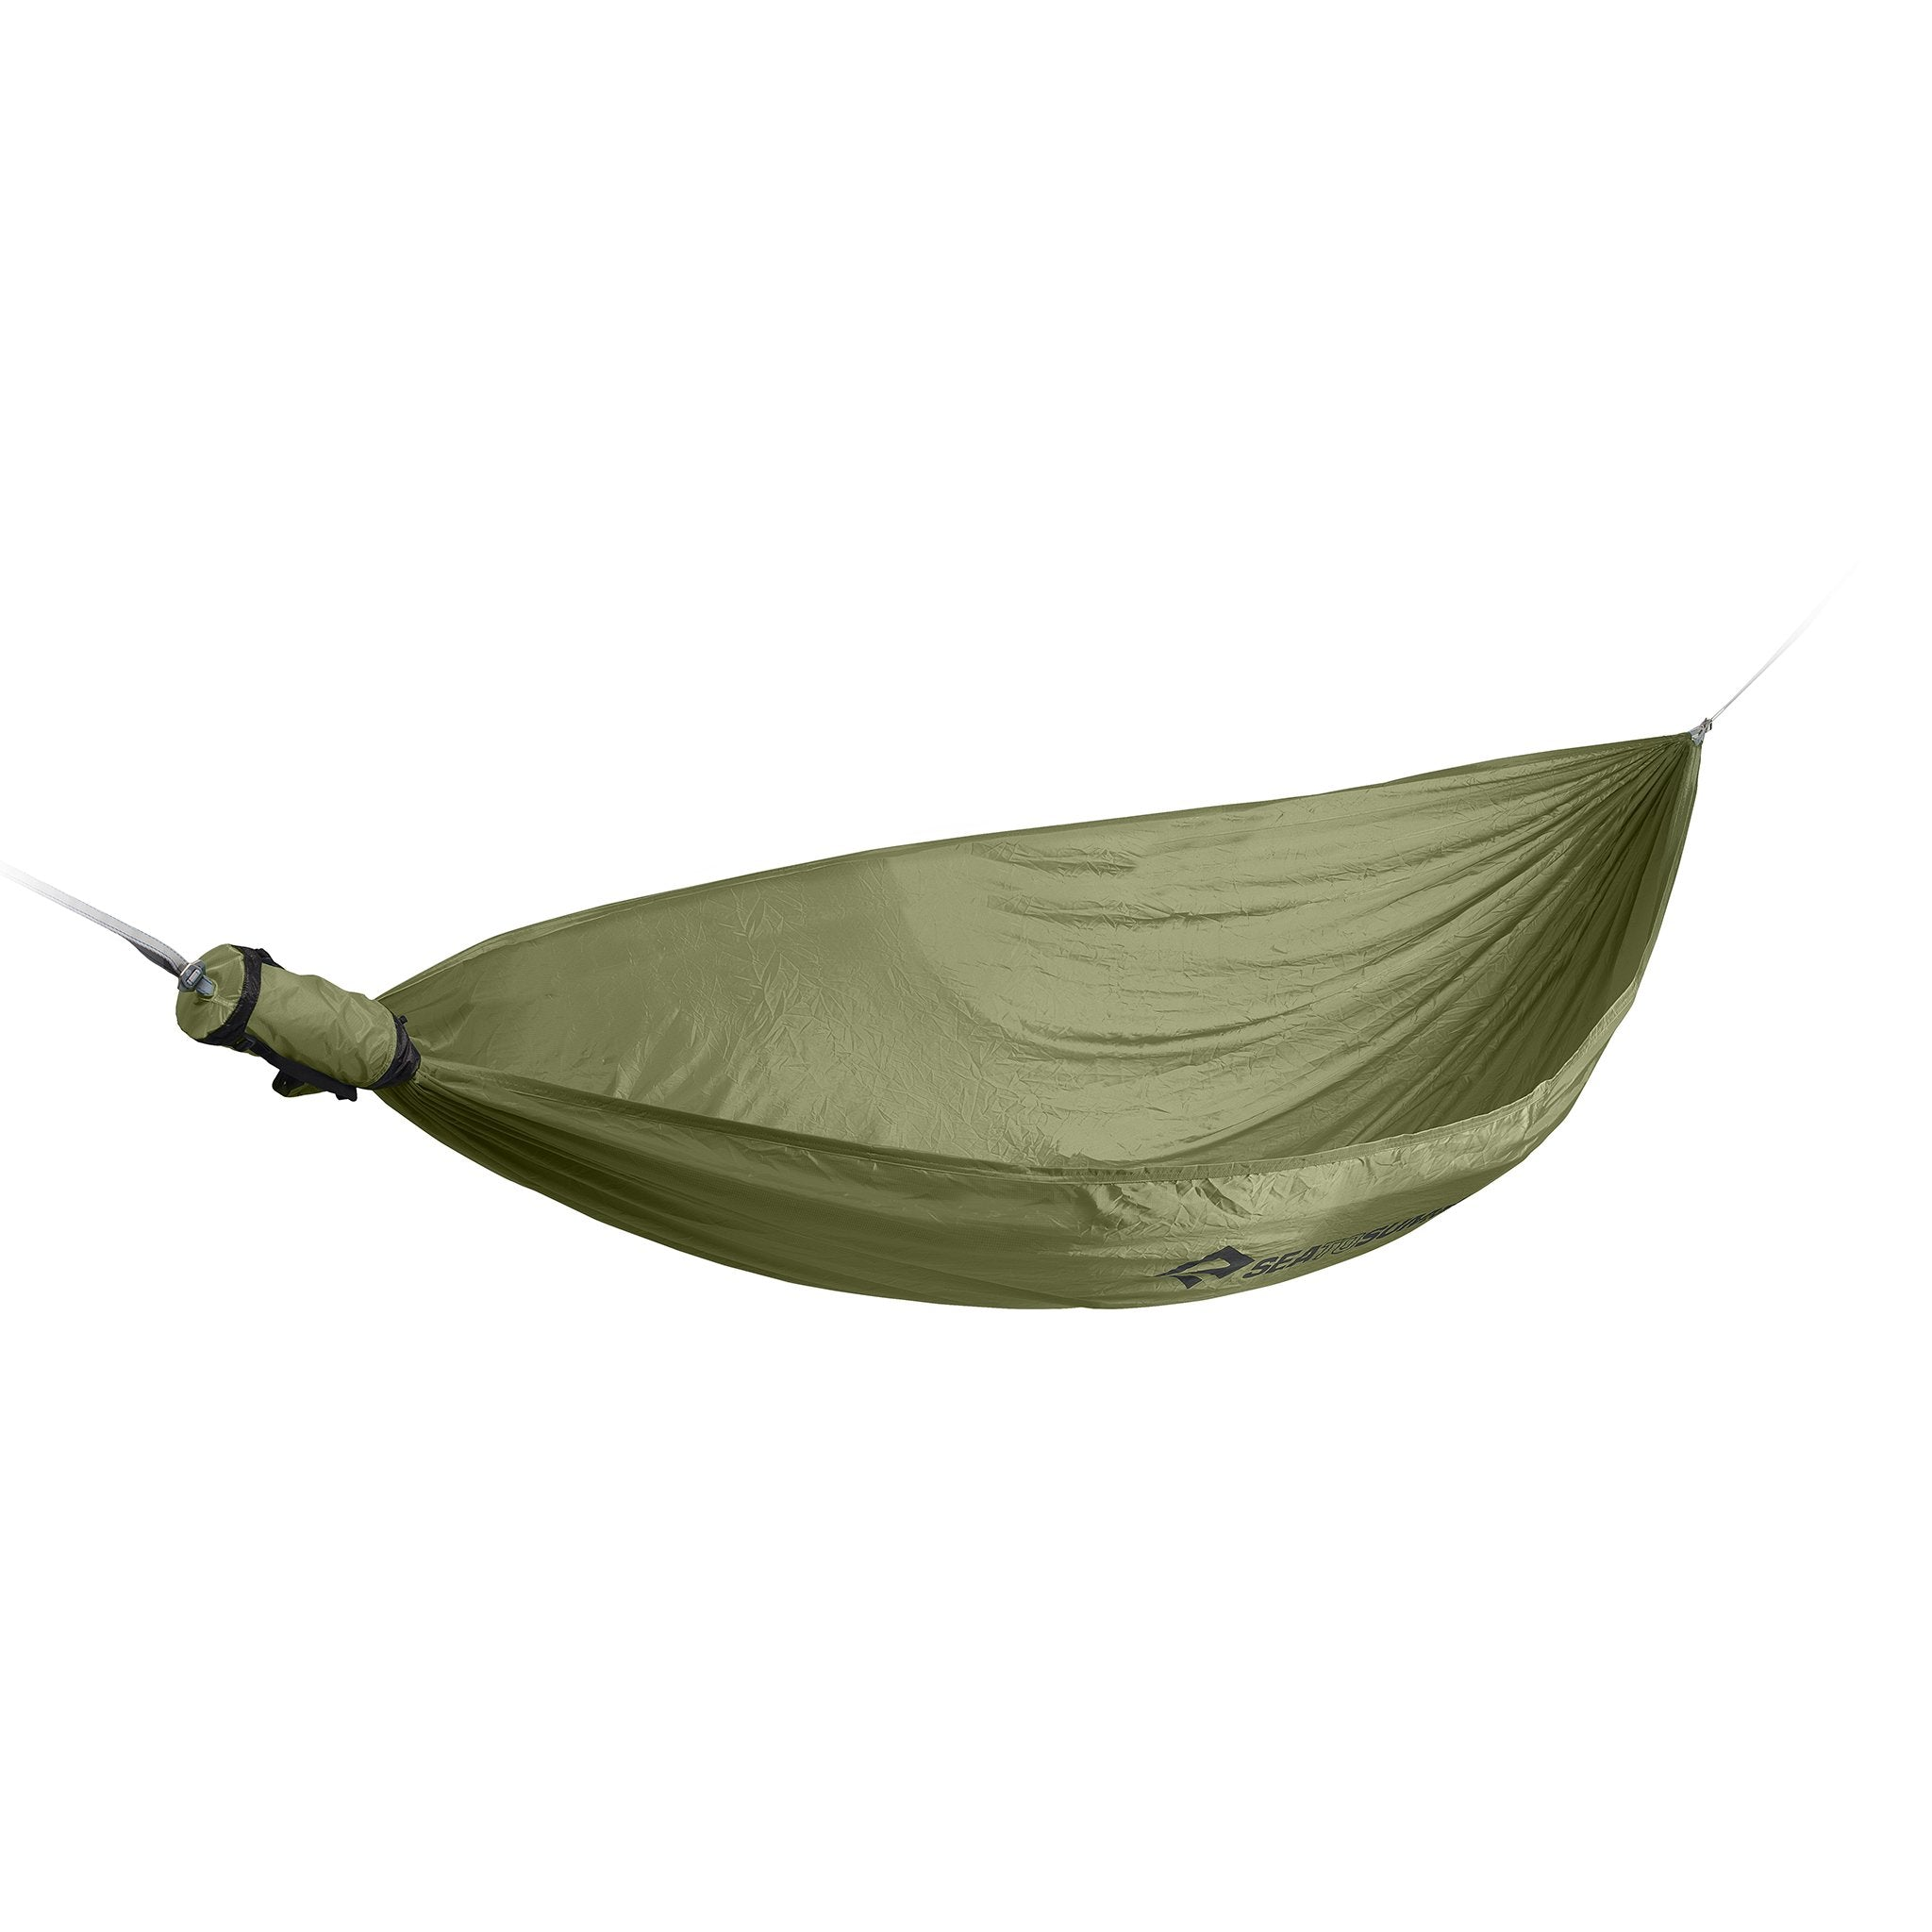 Pro Hammock _ single _ outdoor camping hammock _ olive